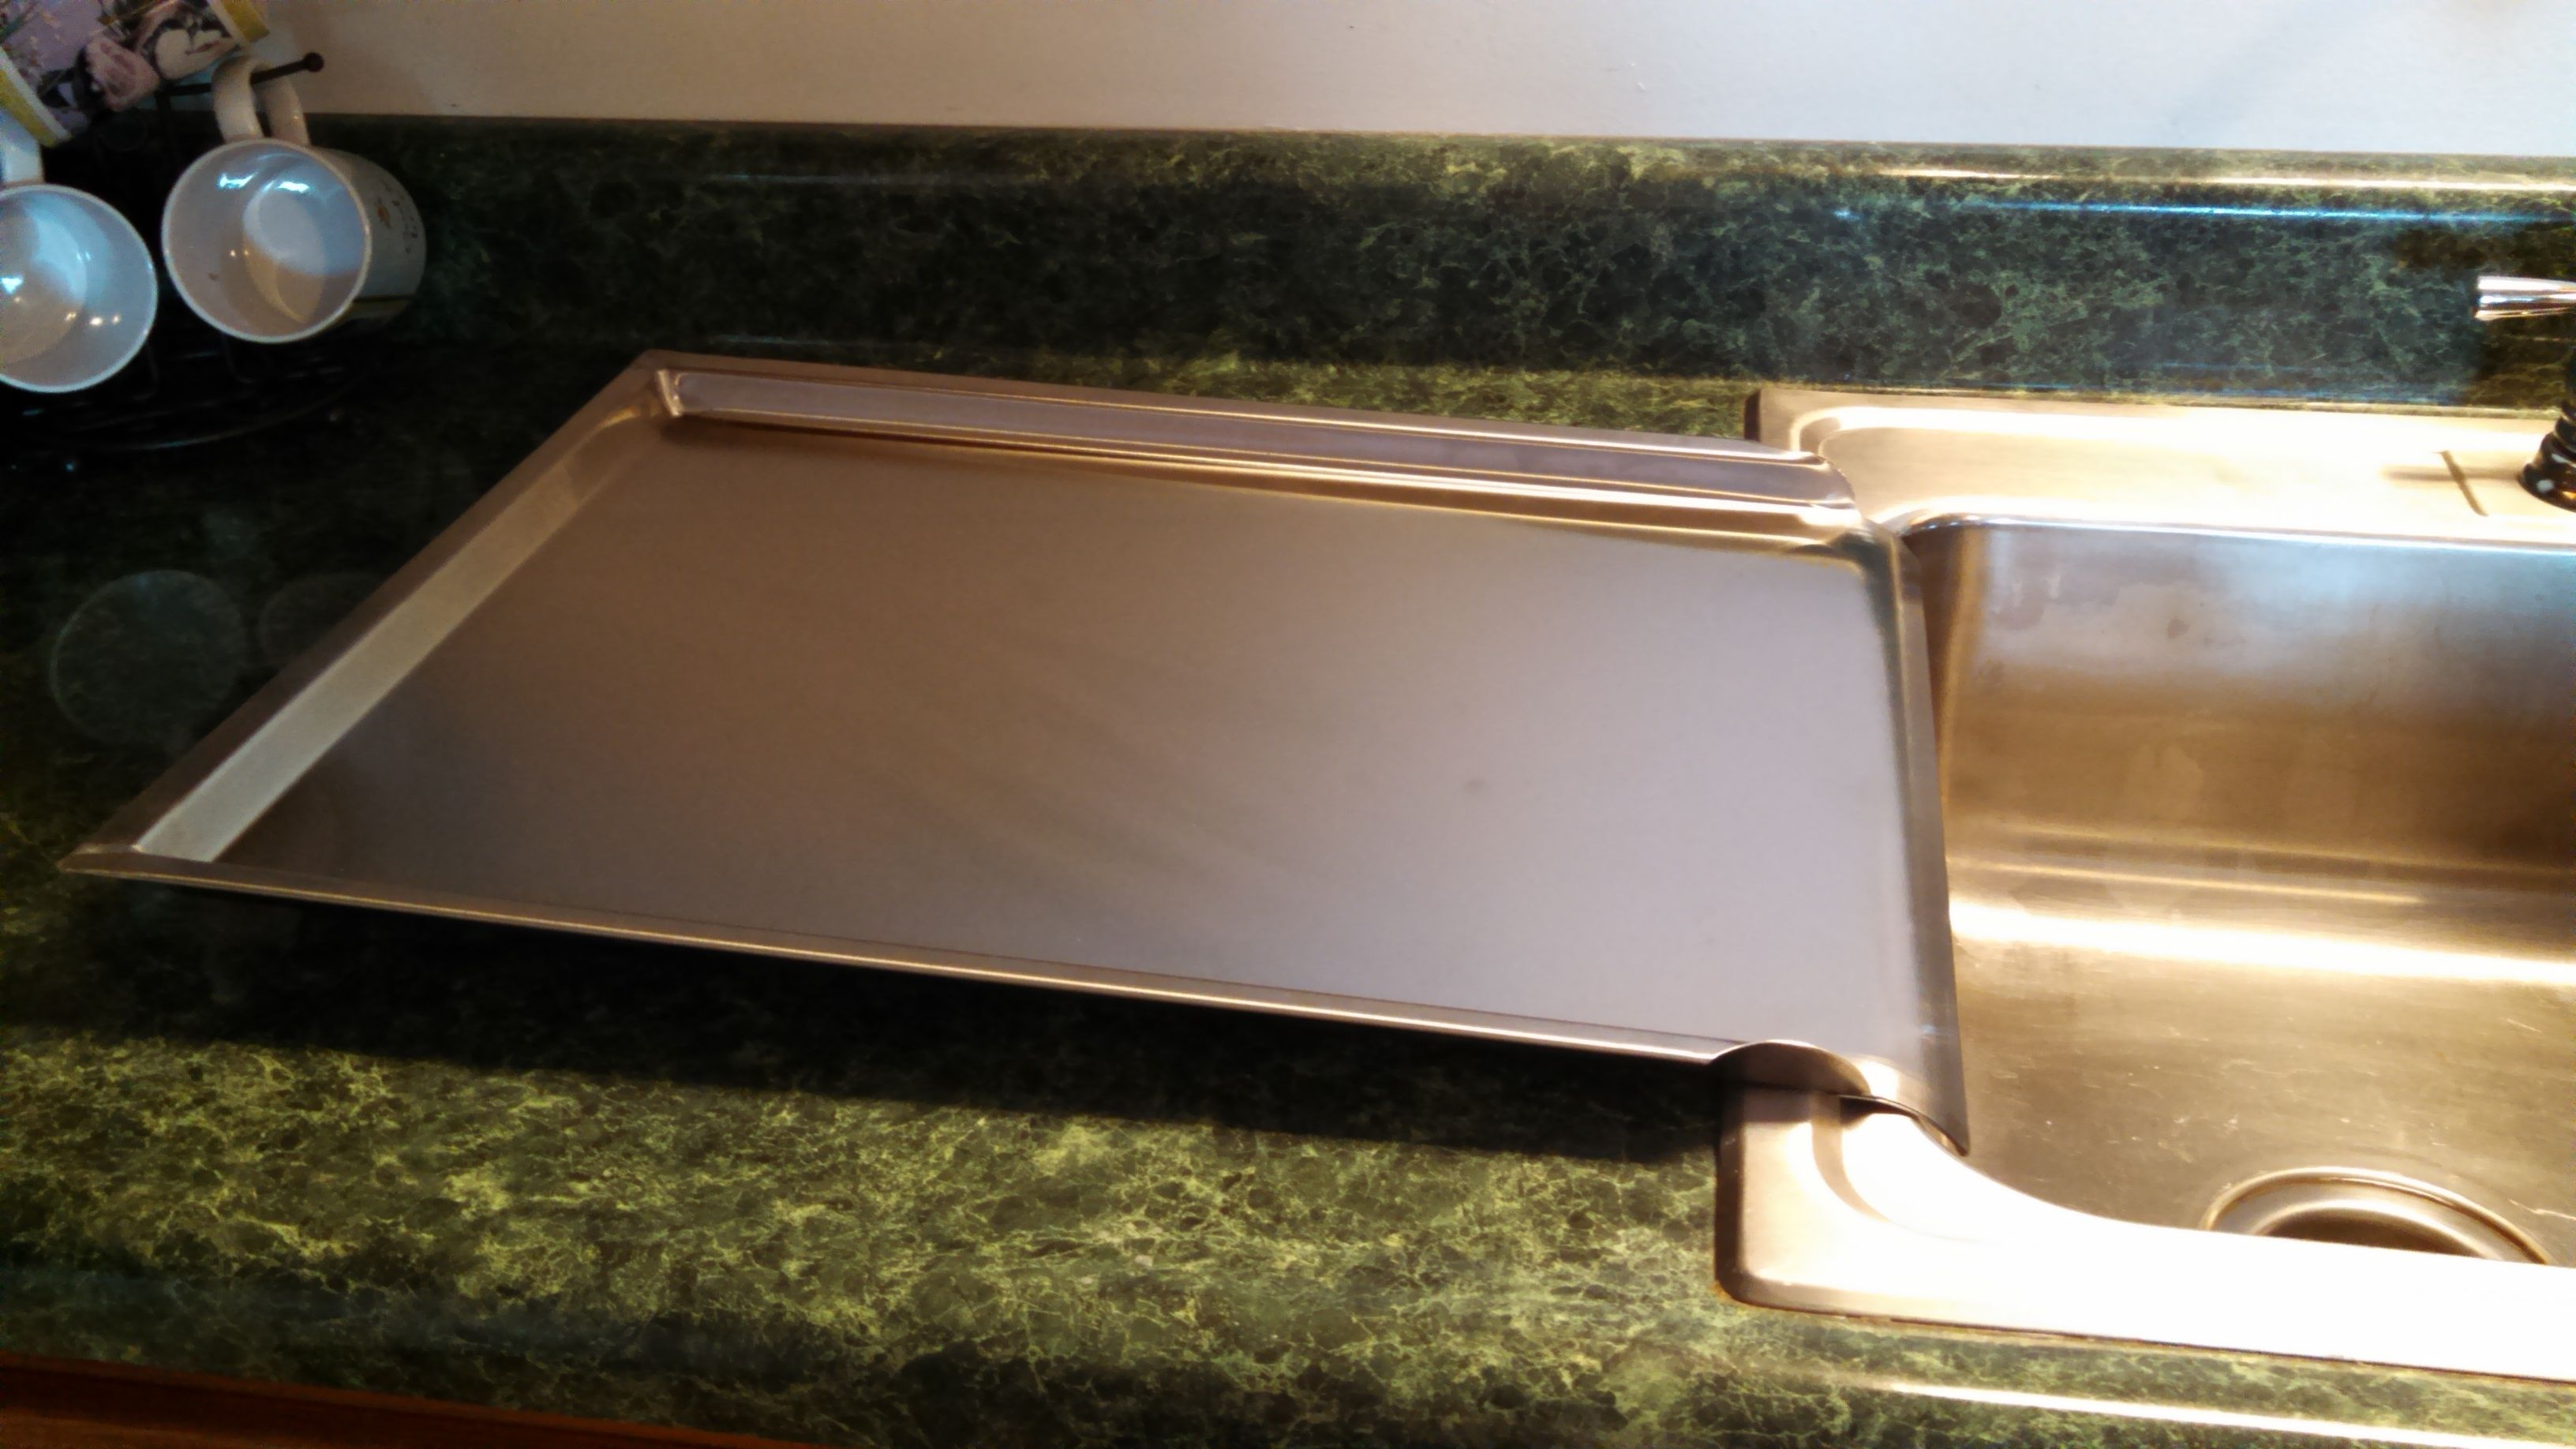 16 X 20 Stainless Steel Drainboard Amish Made 3 Raised